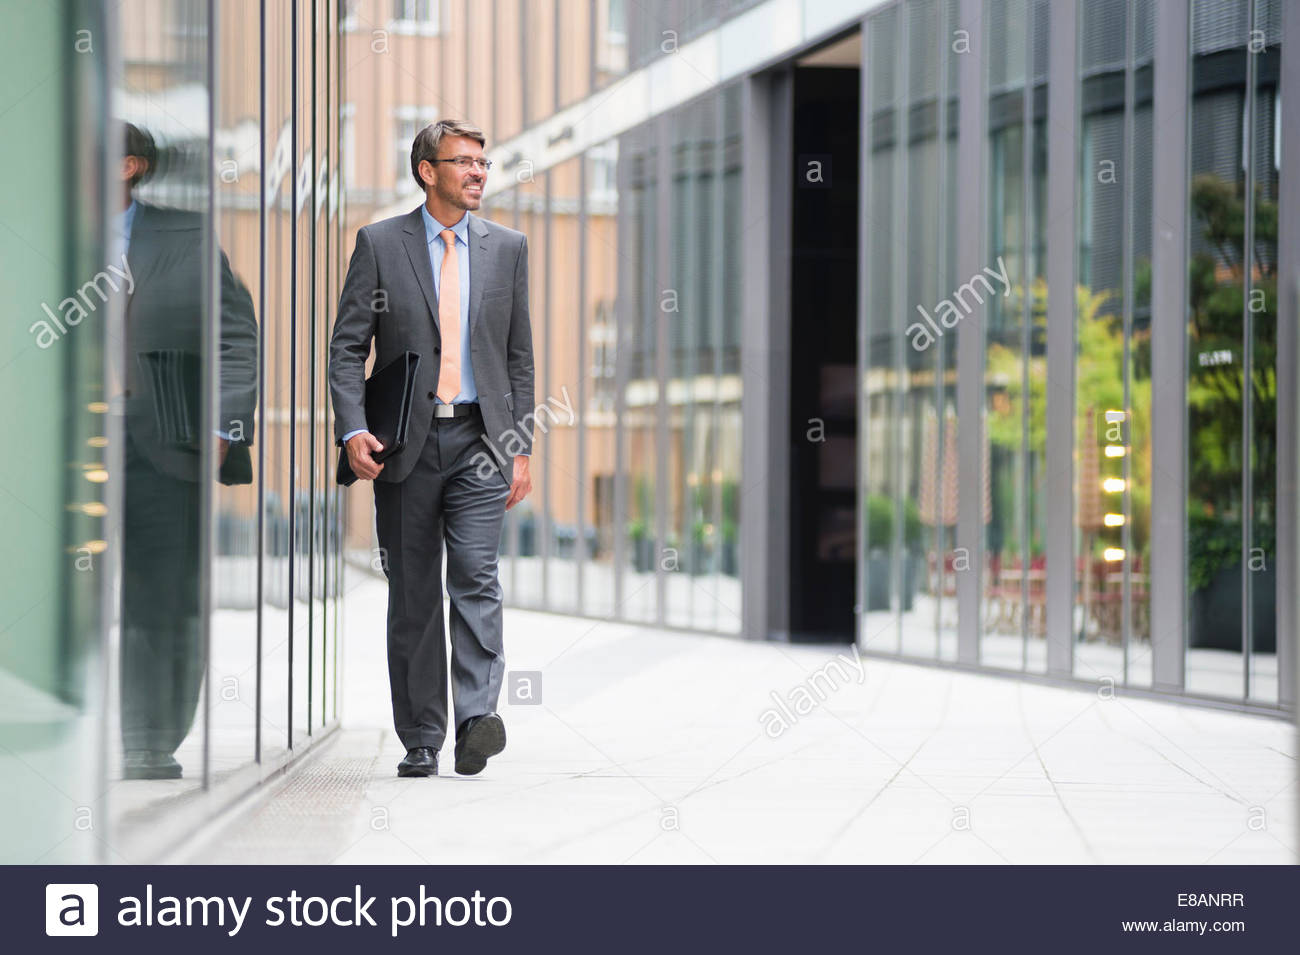 Mature businessman walking outside office building - Stock Image